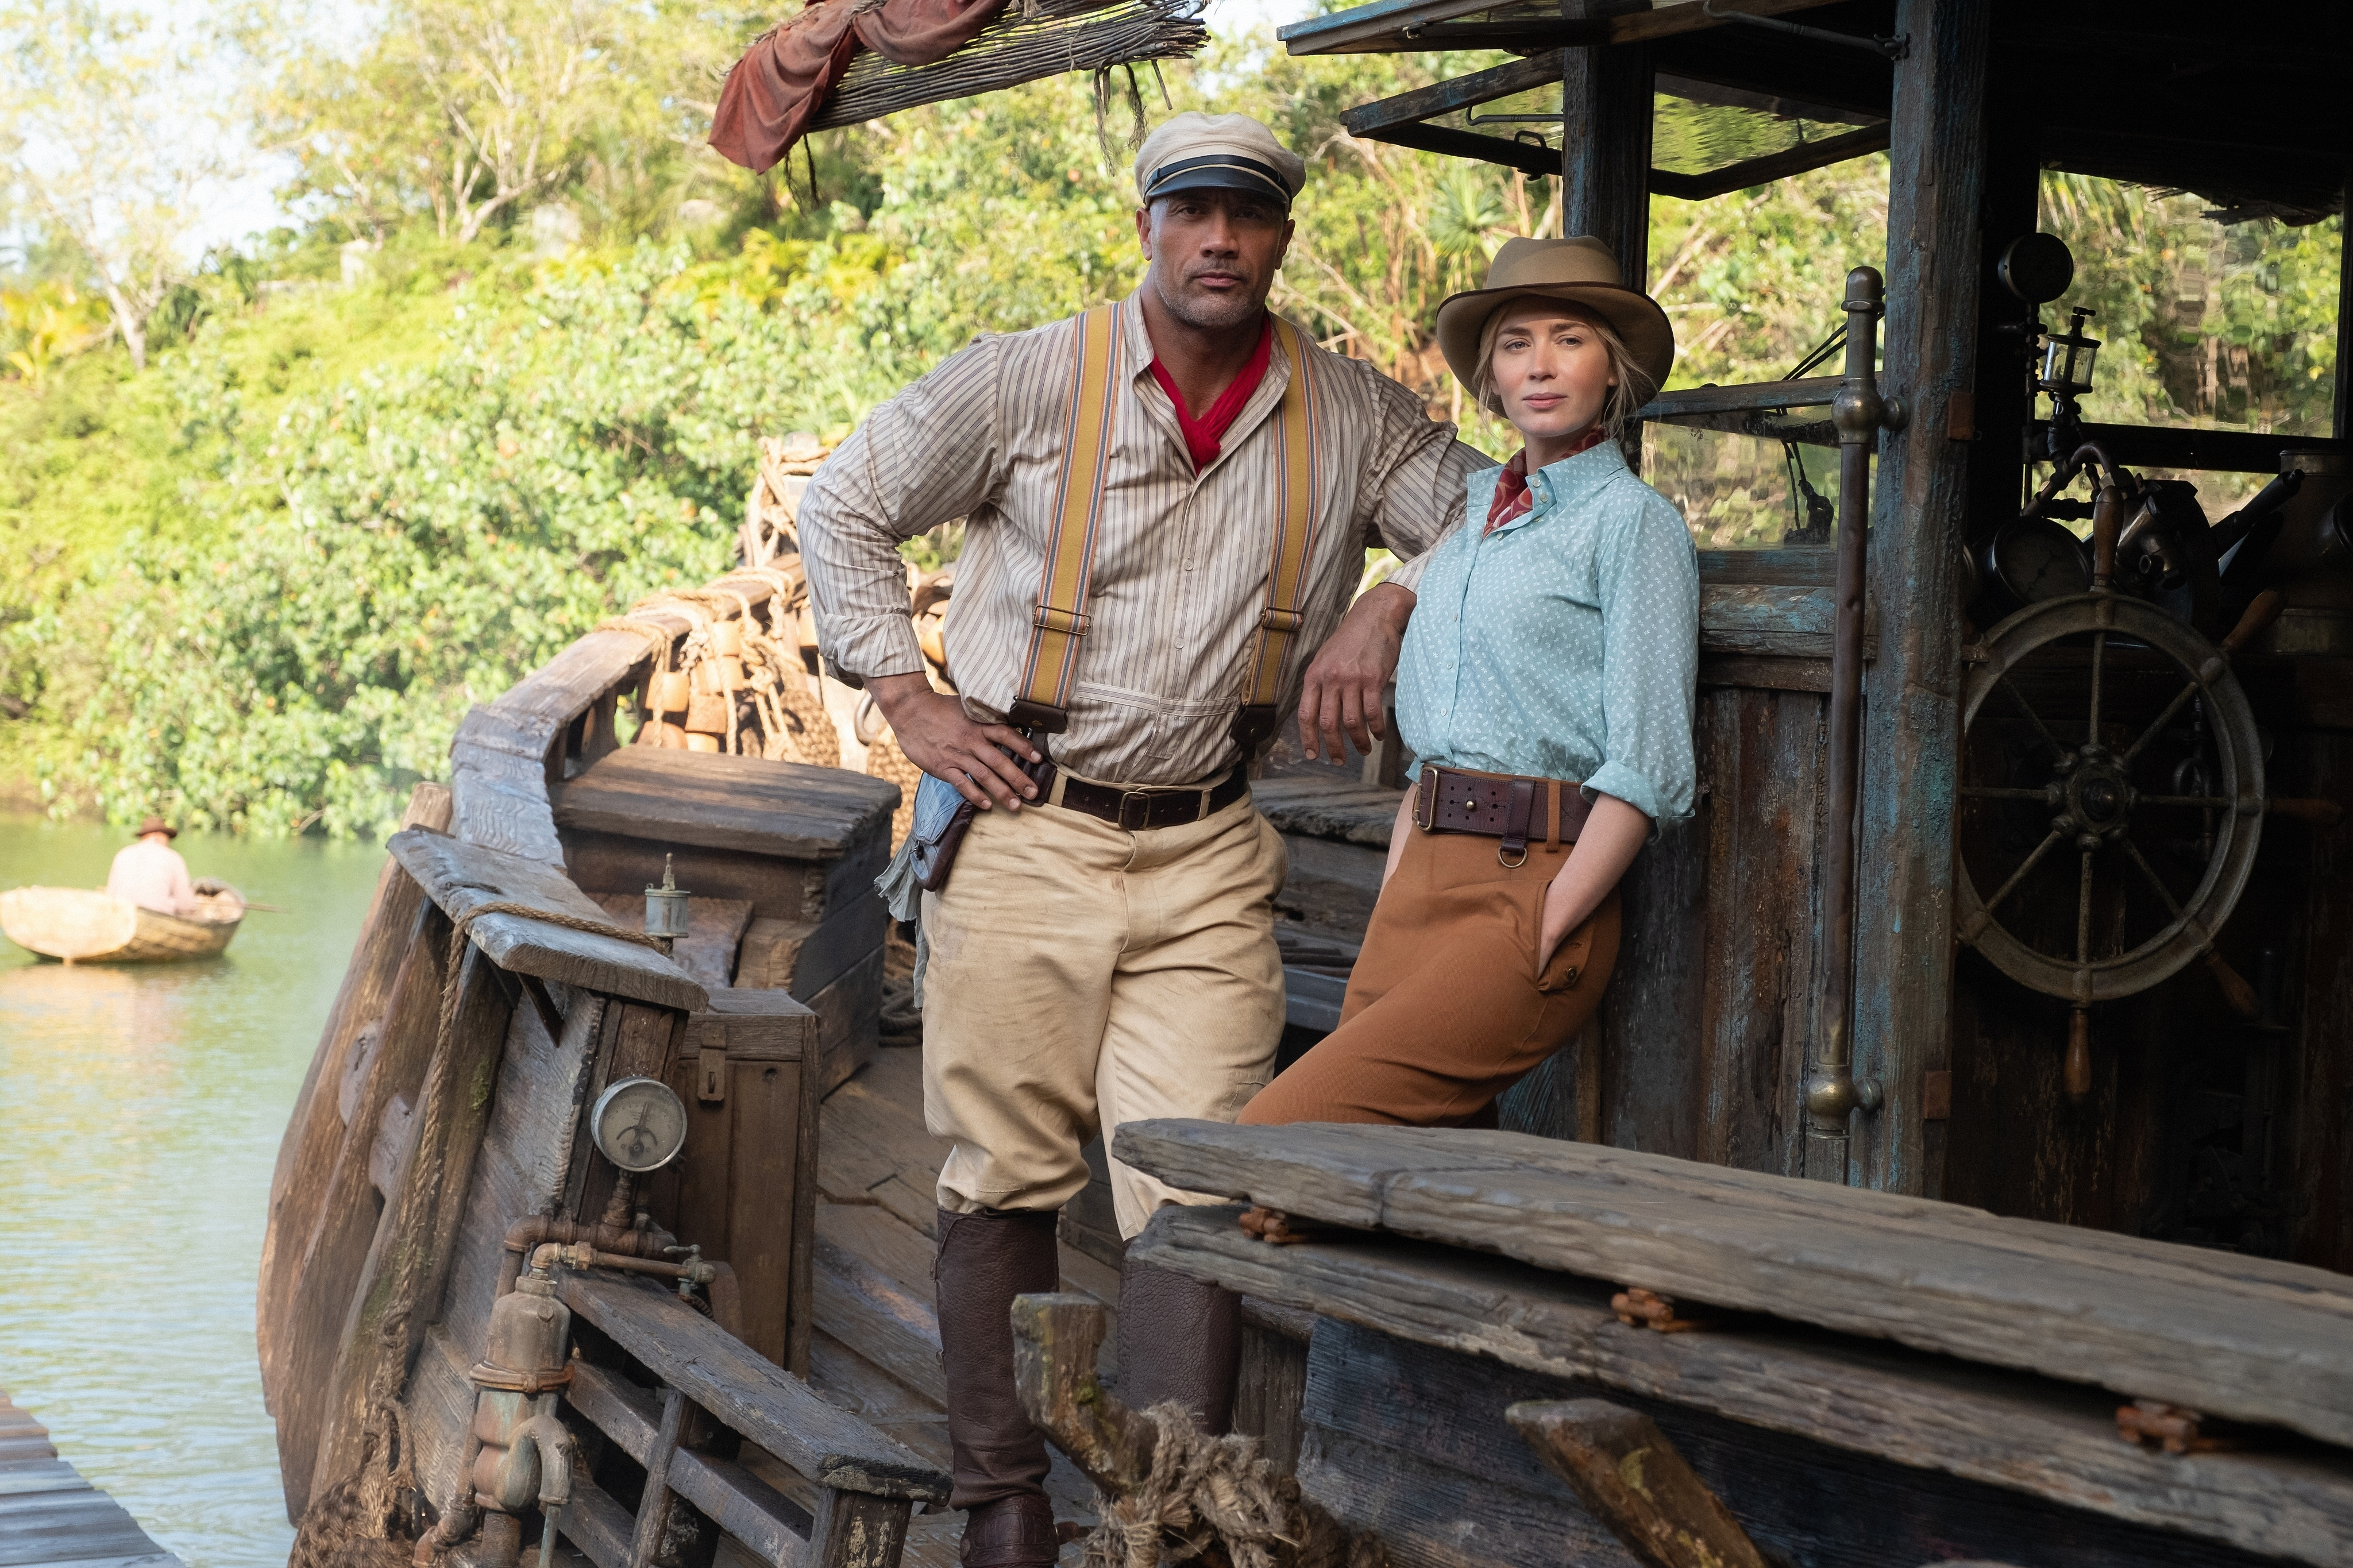 frank and lily standing in front of the titular jungle cruise